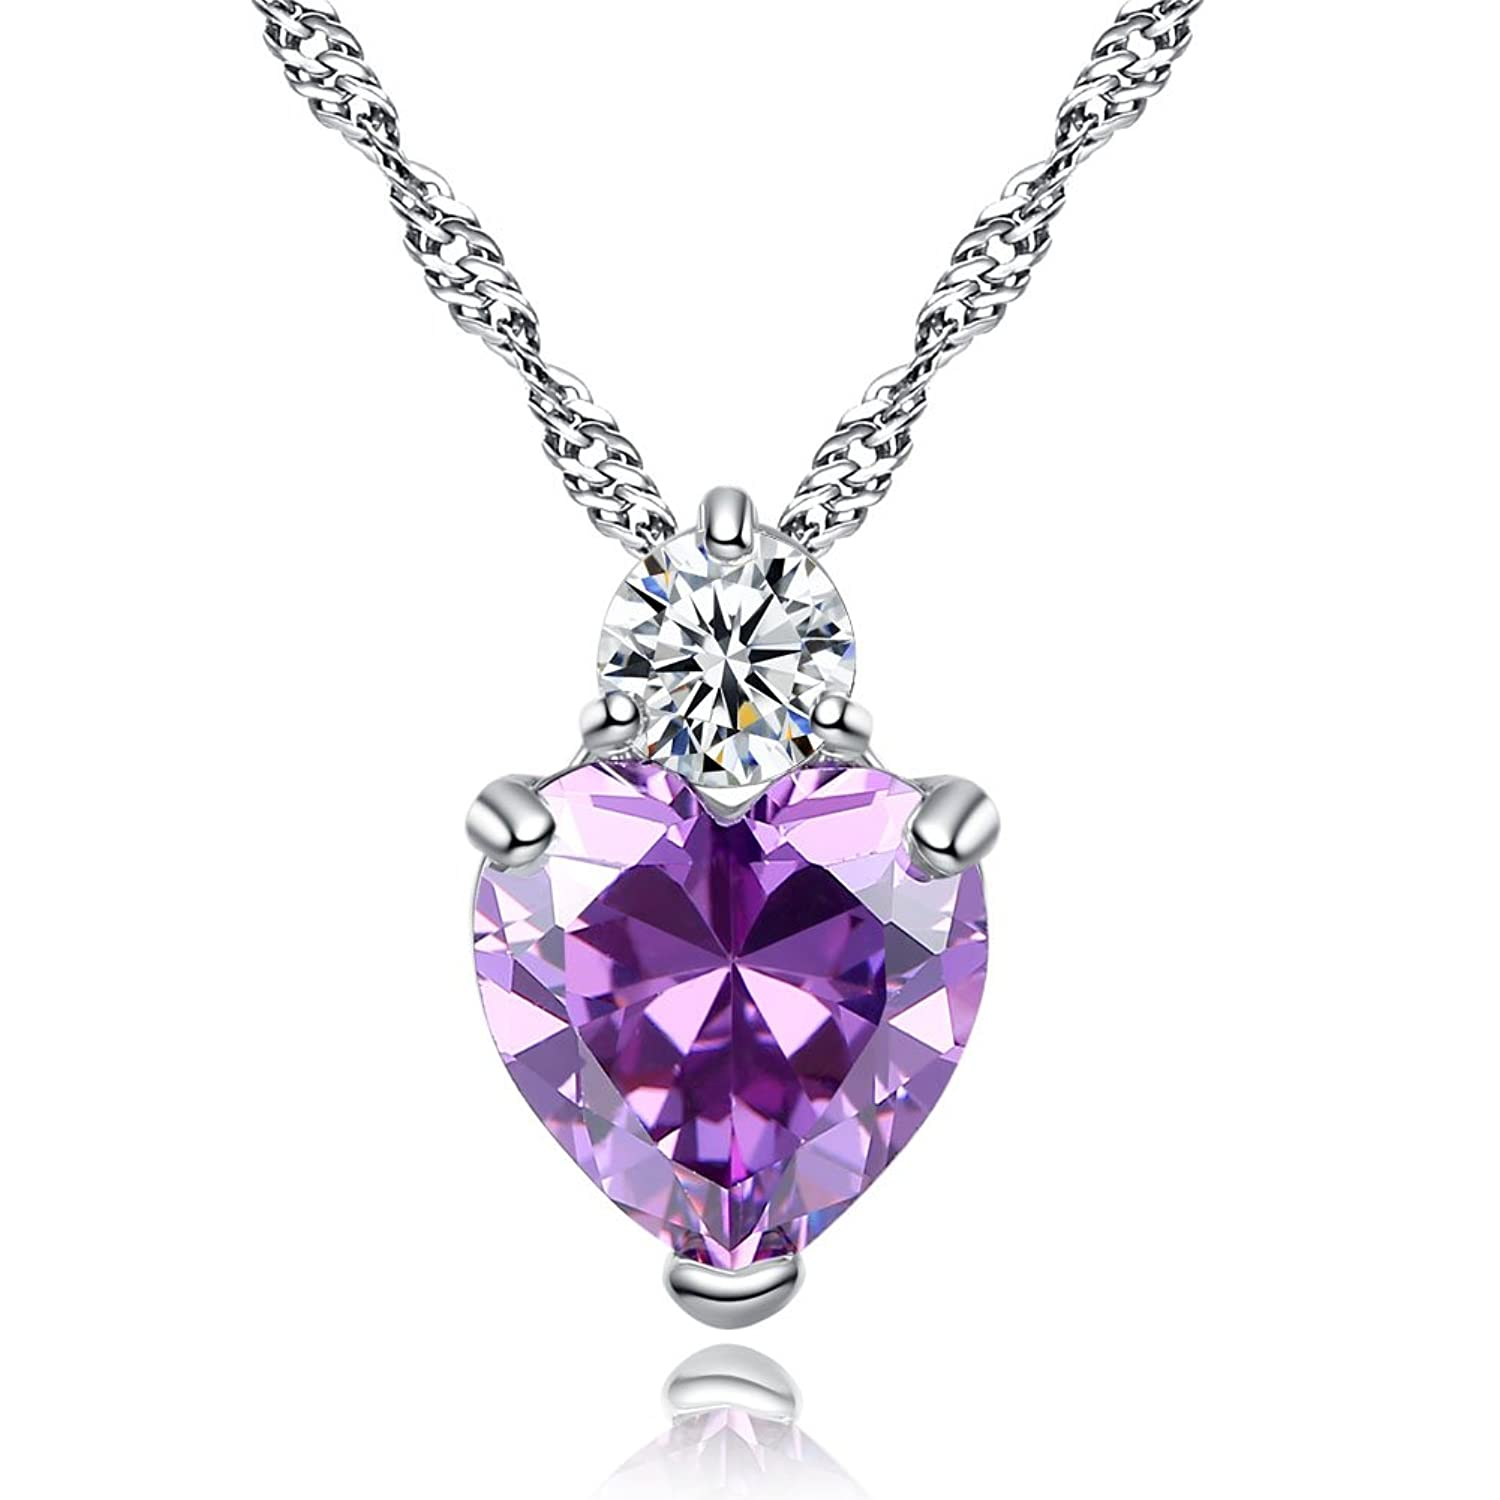 Amazon godyce heart amethyst pendant necklace women girl purple amazon godyce heart amethyst pendant necklace women girl purple crystal 18k gold plated jewelry jewelry mozeypictures Gallery